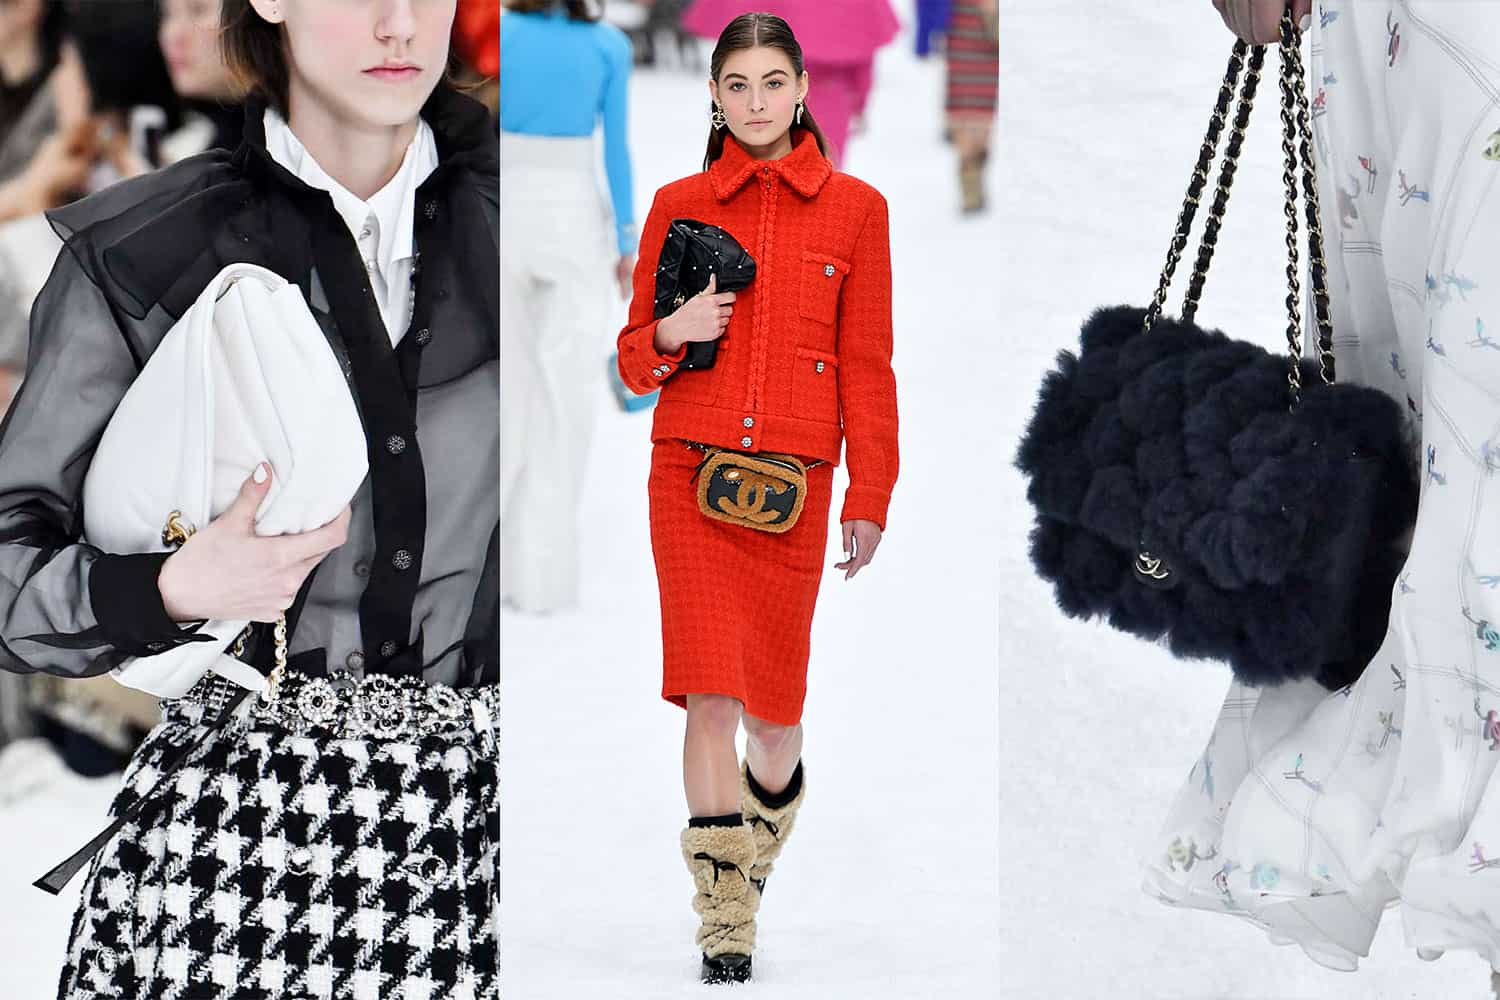 f2c58425f3 40+ Bags at Chanel s Fall 2019 Women s Show — The Daily Front Row